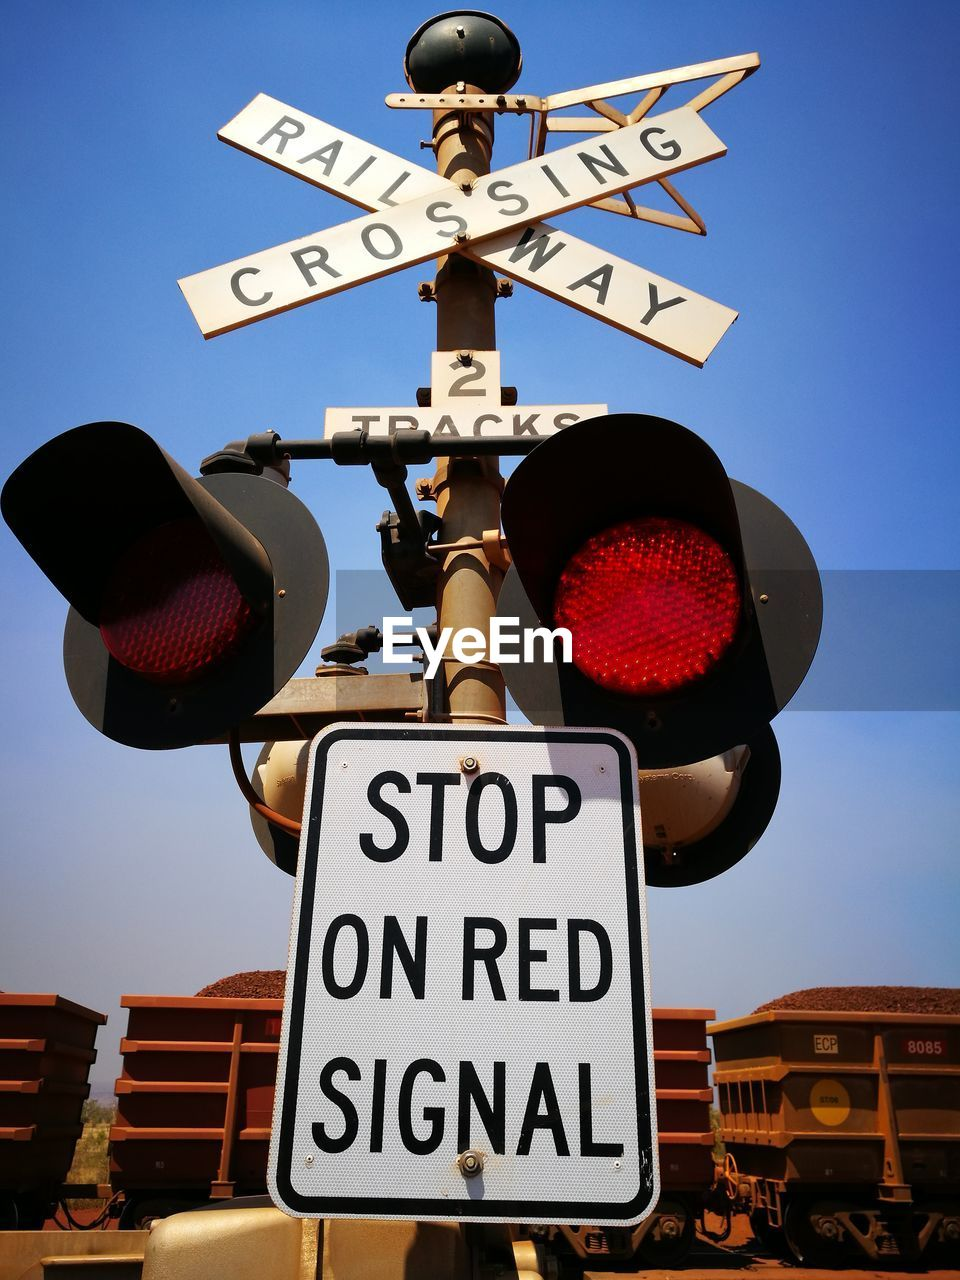 guidance, communication, road sign, crossing sign, railroad crossing, western script, text, low angle view, railway signal, direction, day, clear sky, warning sign, transportation, blue, red light, safety, outdoors, no people, rail transportation, stoplight, sky, one way, illuminated, close-up